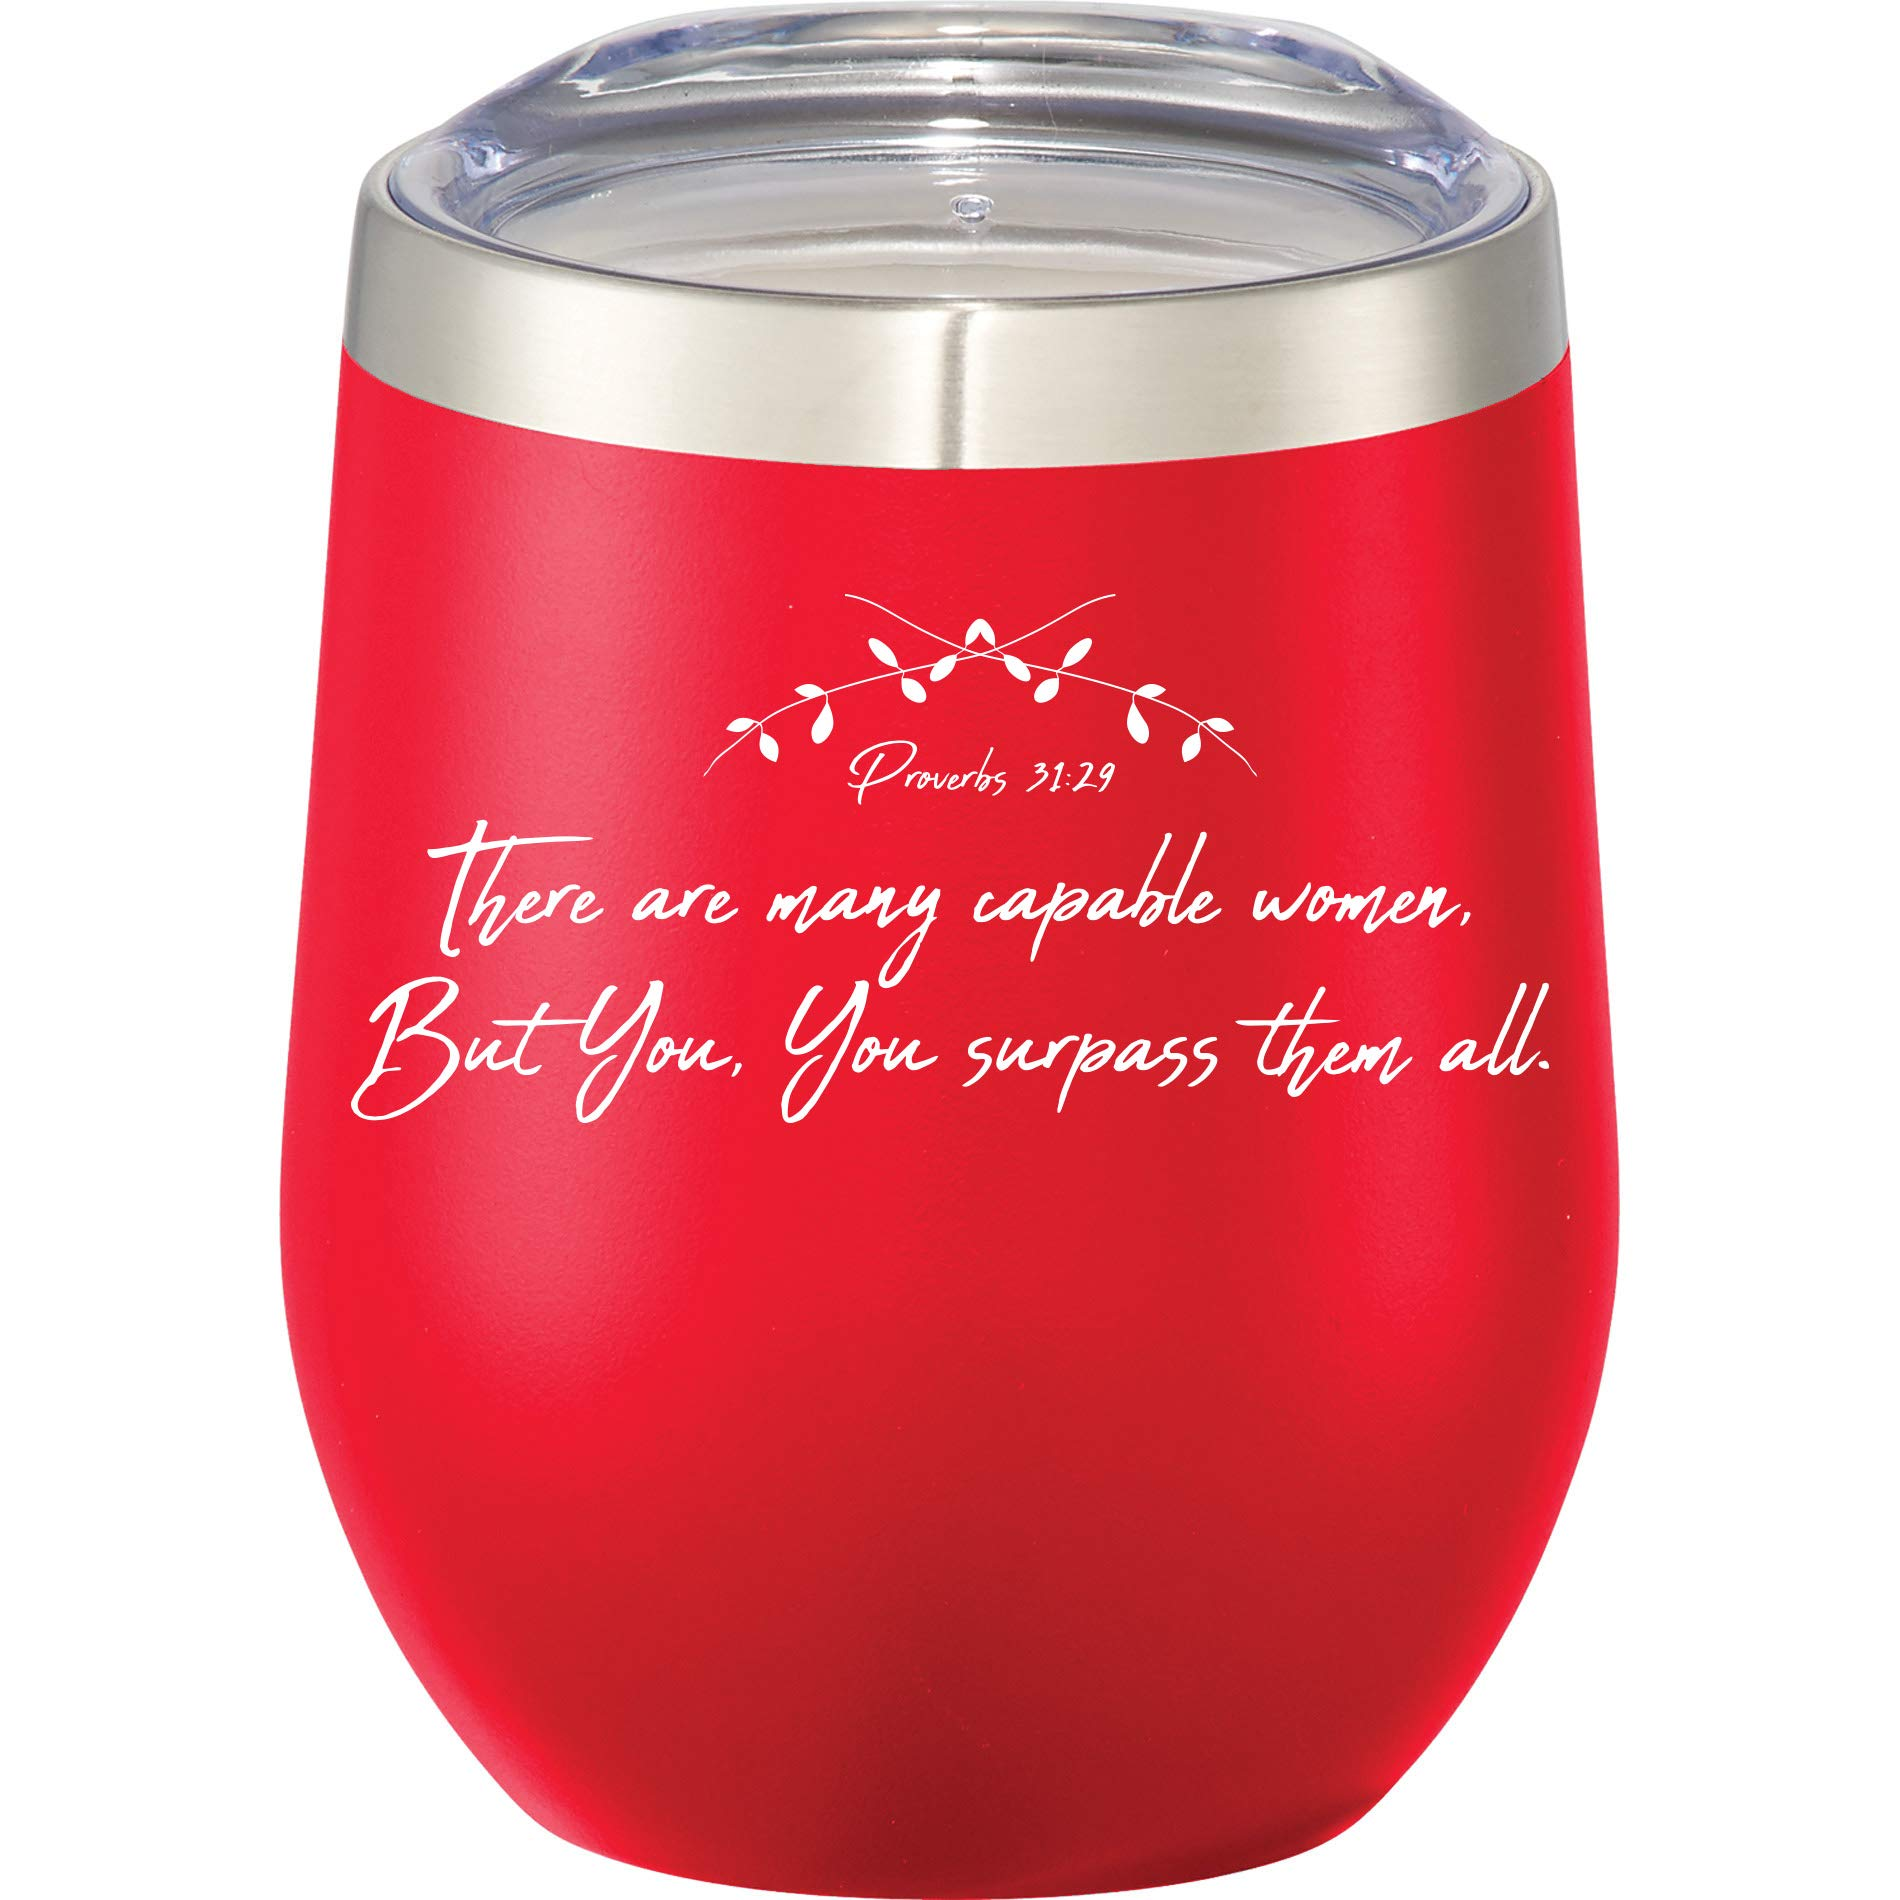 Christian Stemless Insulated Stainless Steel Wine Glass Tumbler - Christian Bible Gift - Outdoor Use - 12 oz Travel Cup - Insulated by LetsGo!